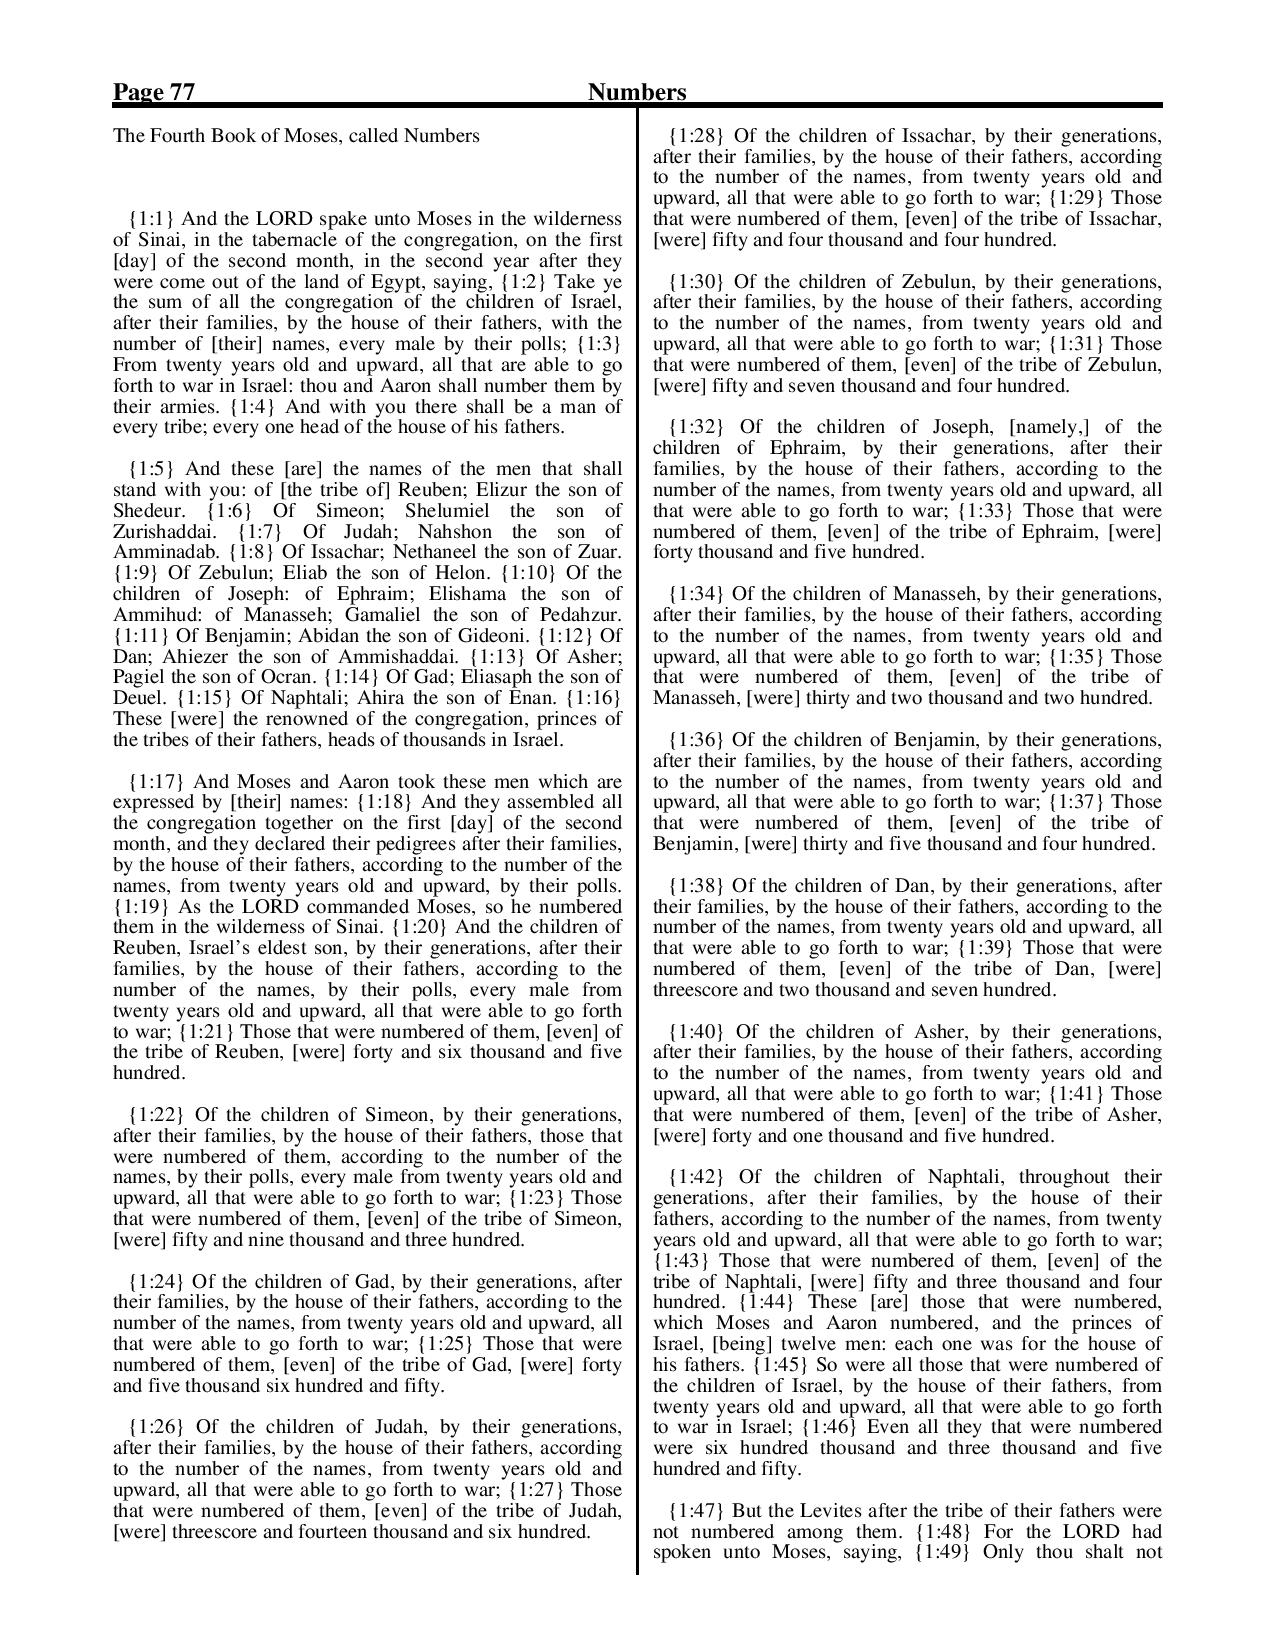 King-James-Bible-KJV-Bible-PDF-page-098